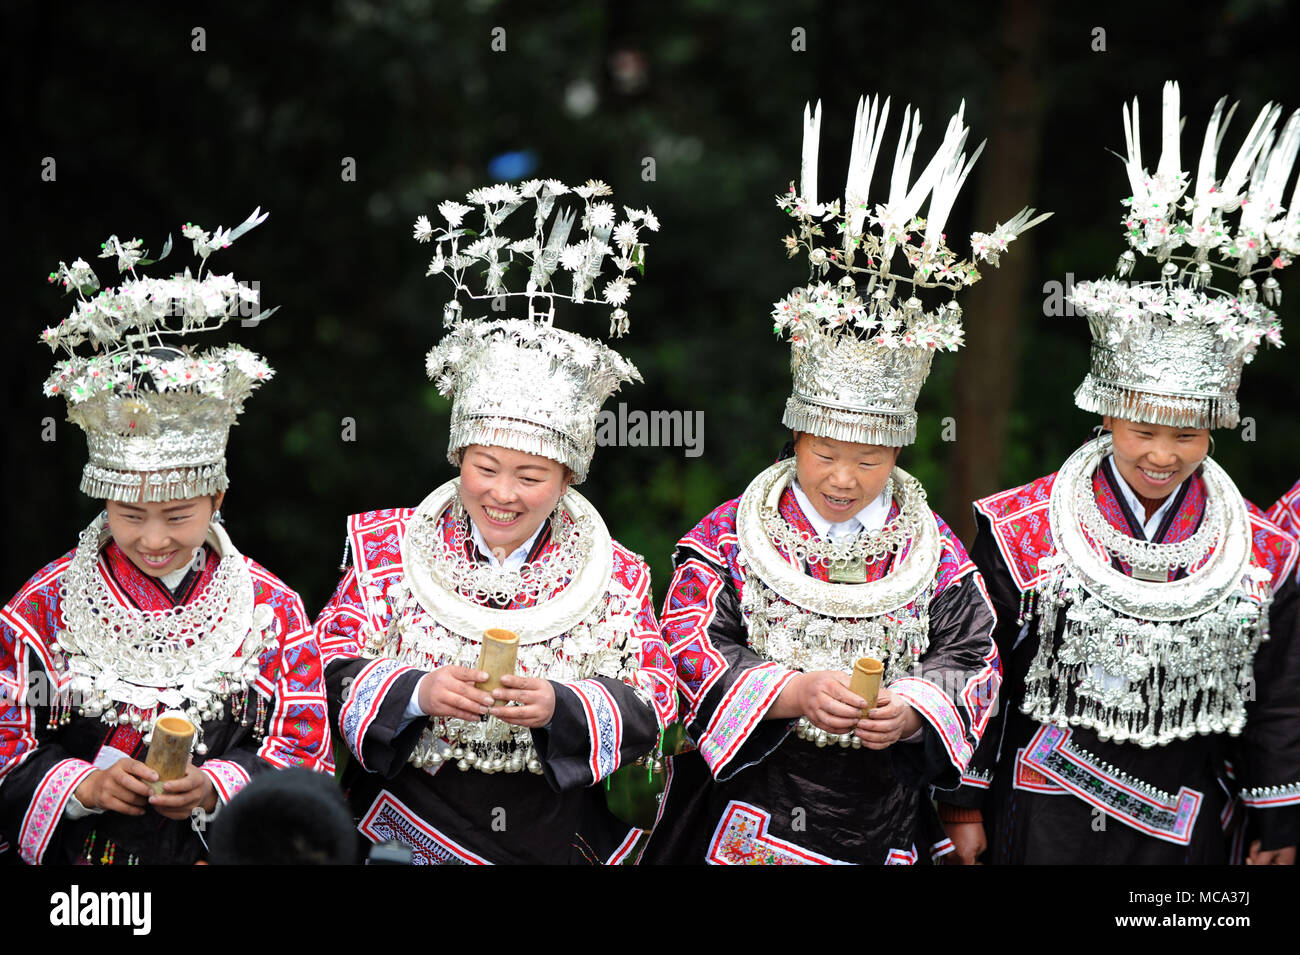 Jianhe, China's Guizhou Province. 14th Apr, 2018. People of Miao ethnic group sing love songs during a celebration of the Love Song Festival in Jianhe County in Qiandongnan Miao and Dong Autonomous Prefecture, southwest China's Guizhou Province, April 14, 2018. People of the Miao ethnic group celebrated their Love Song Festival here on Saturday. Credit: Yang Wenbin/Xinhua/Alamy Live News - Stock Image